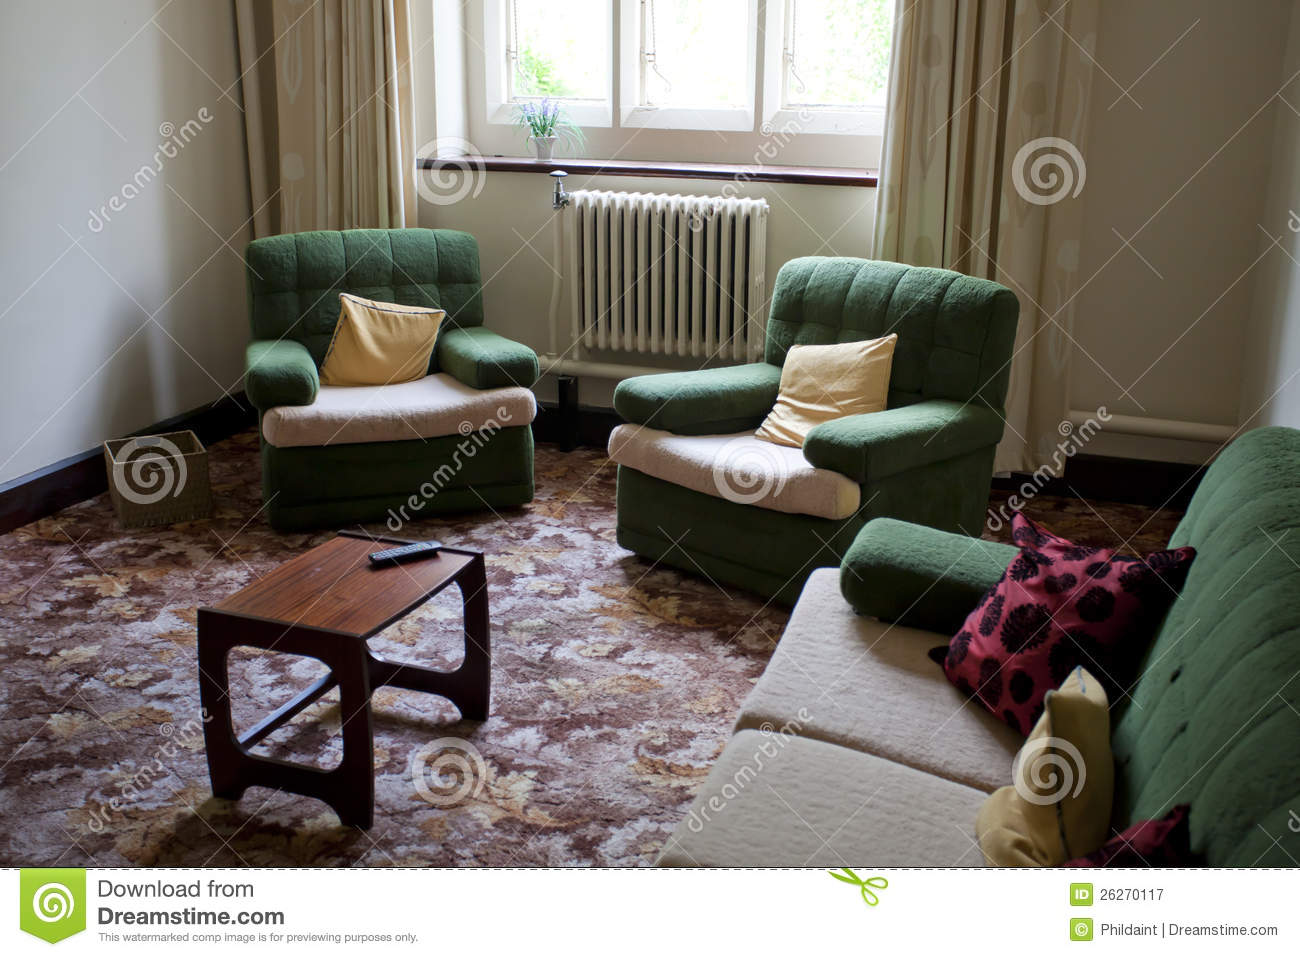 old style living room - photo #8